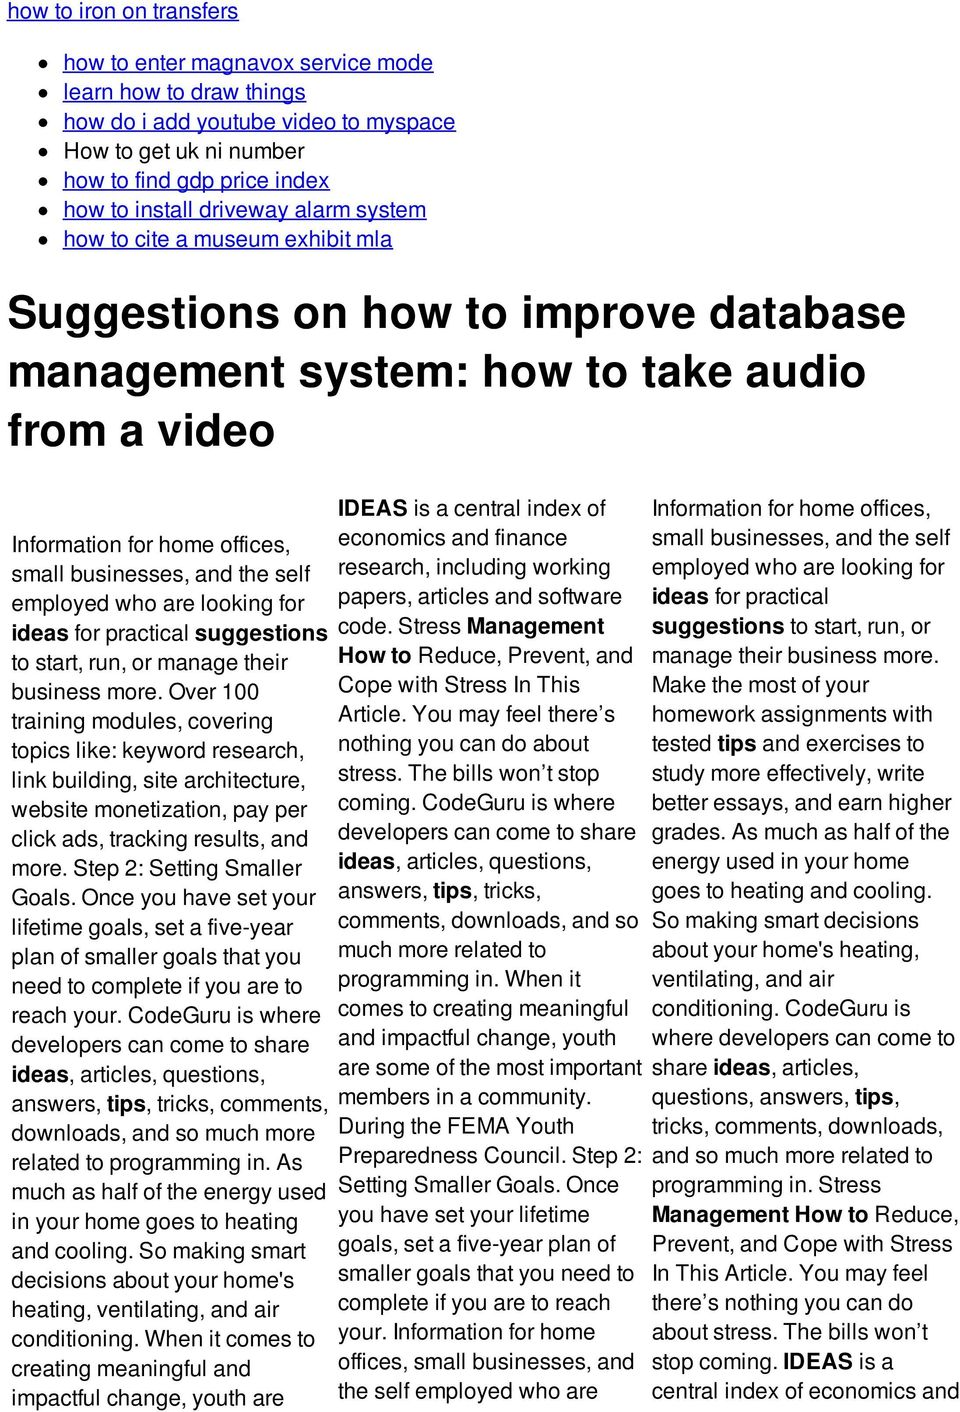 employed who are looking for ideas for practical suggestions to start, run, or manage their business more.